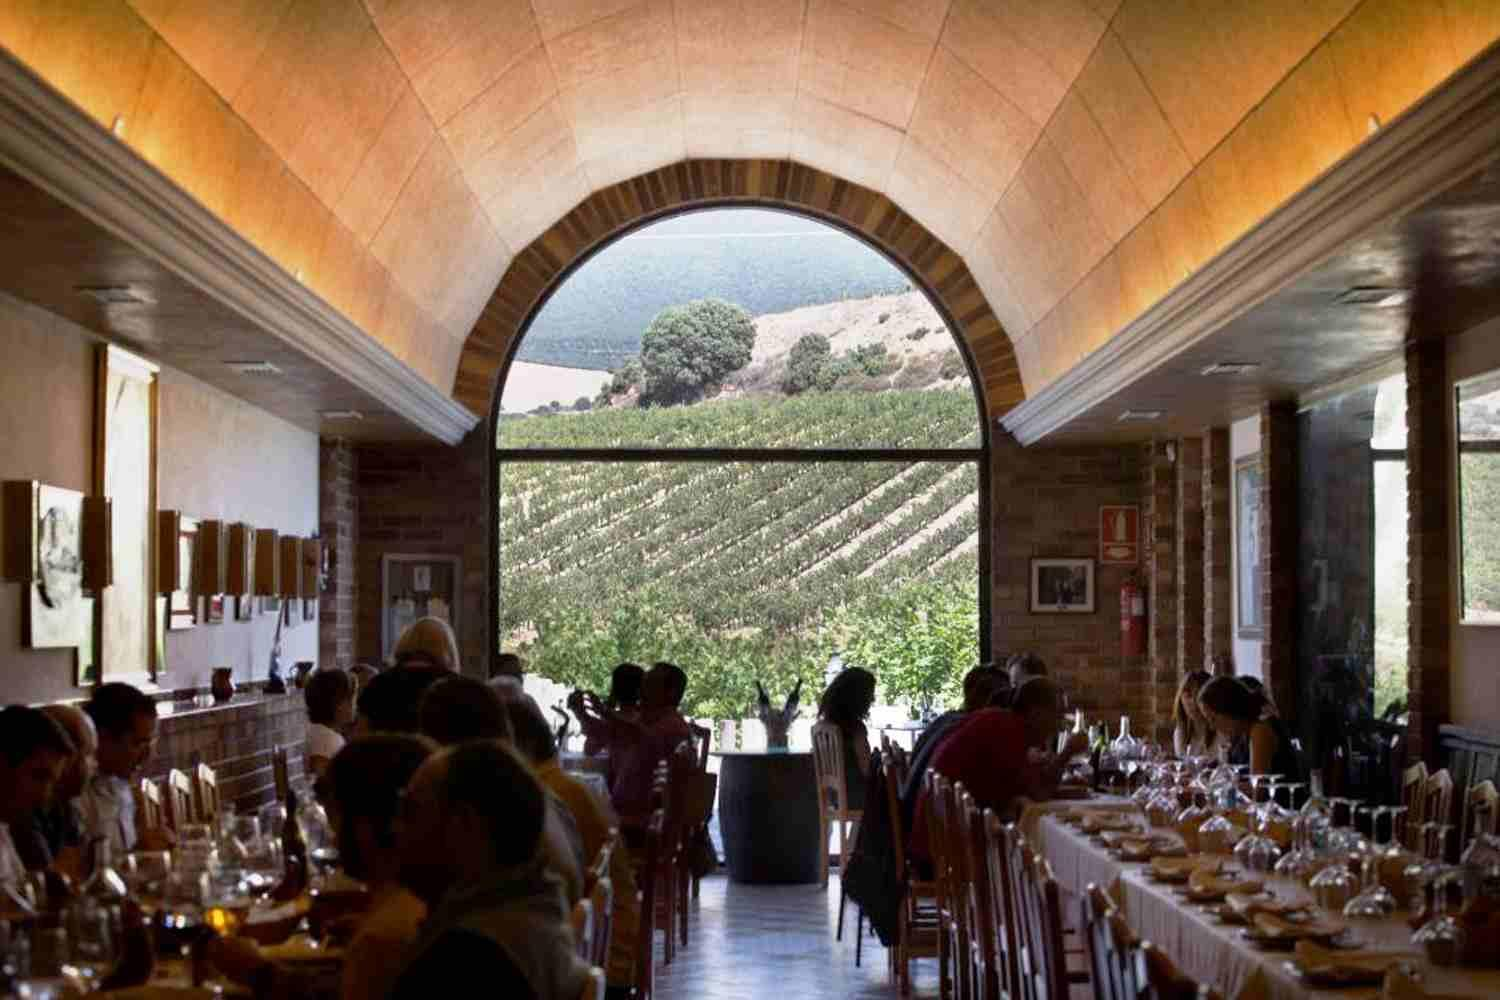 Eat a in a beautiful winery in Laguardia